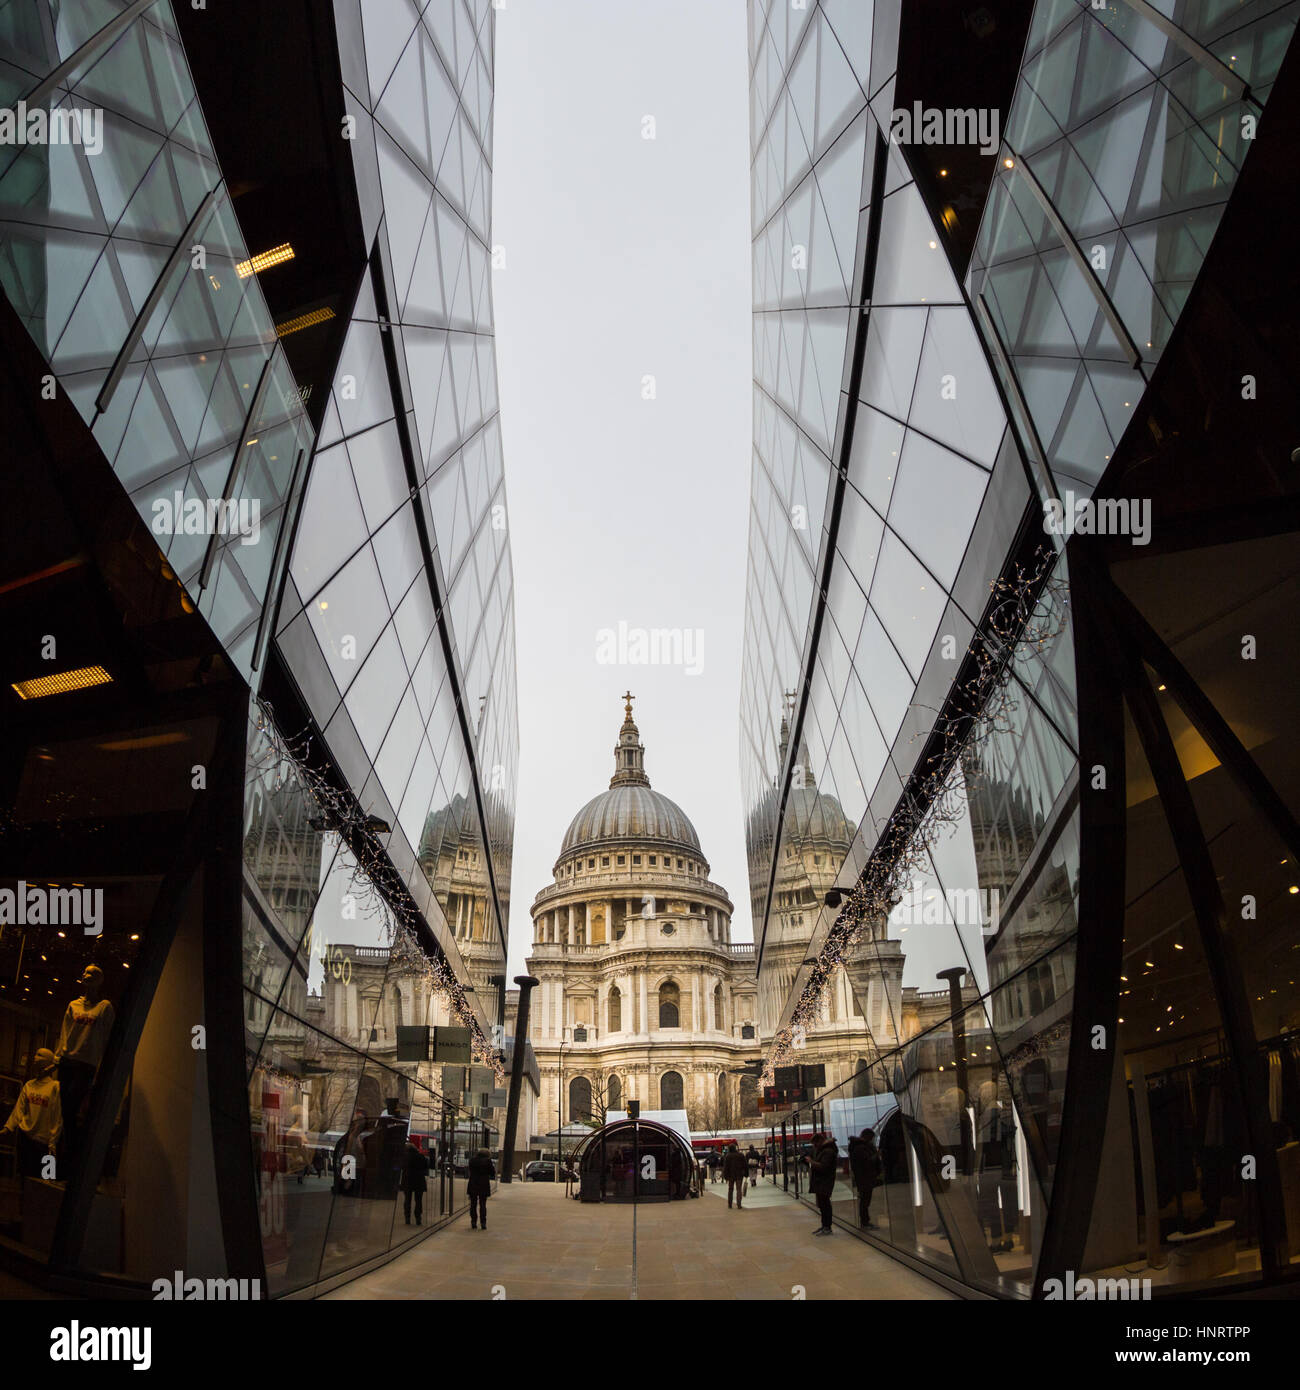 St Pauls Cathedral view and reflections seen from One New Change, London, UK - Stock Image